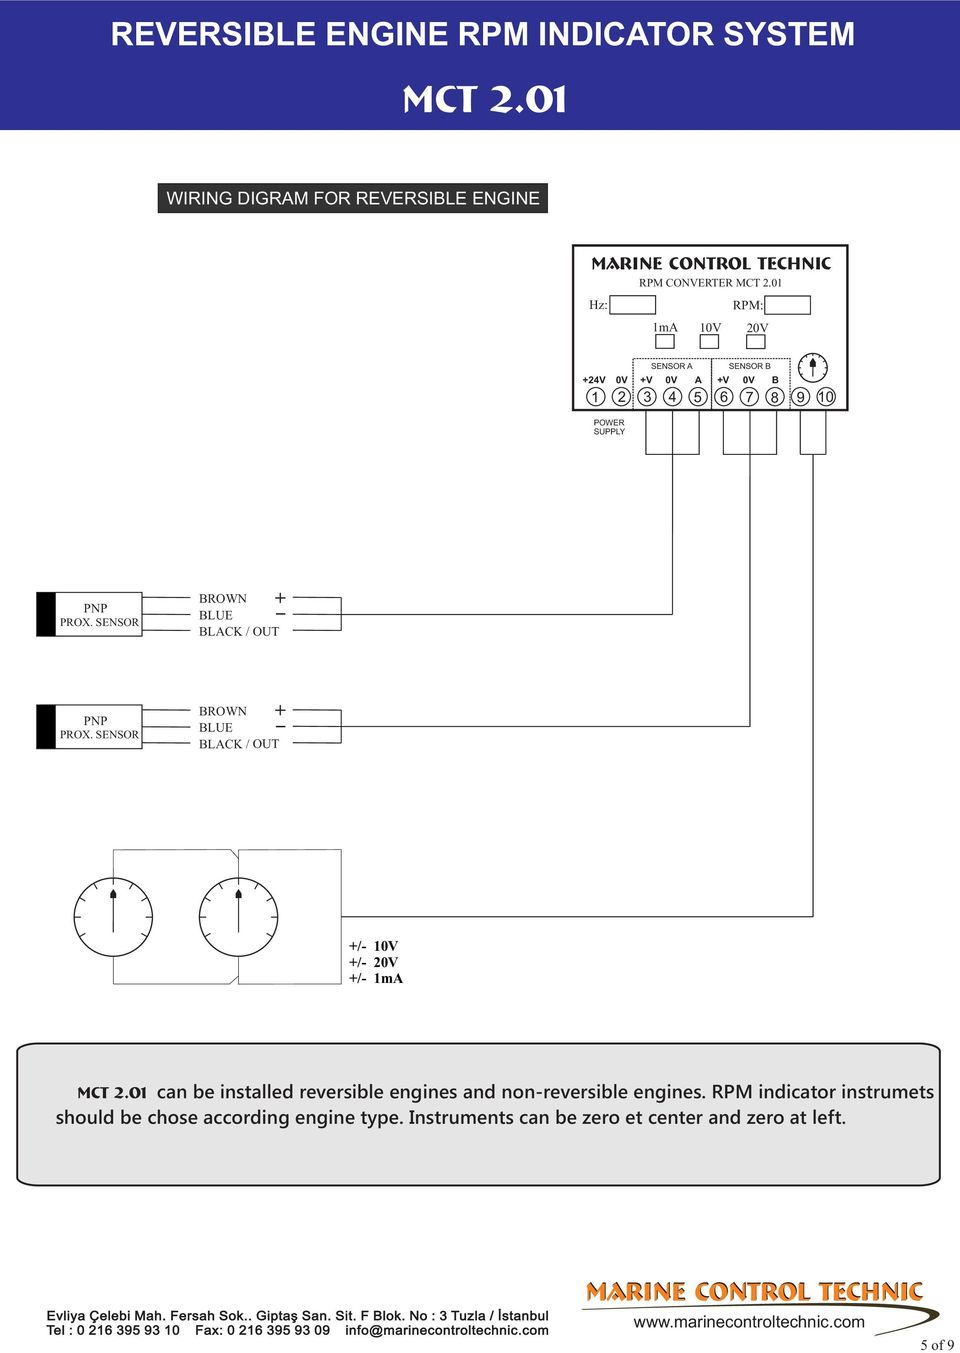 Reversible Engine Rpm Indicator System Mct Pdf 20v W Diesel Diagram Sensor Brown Blue Black Out 10v